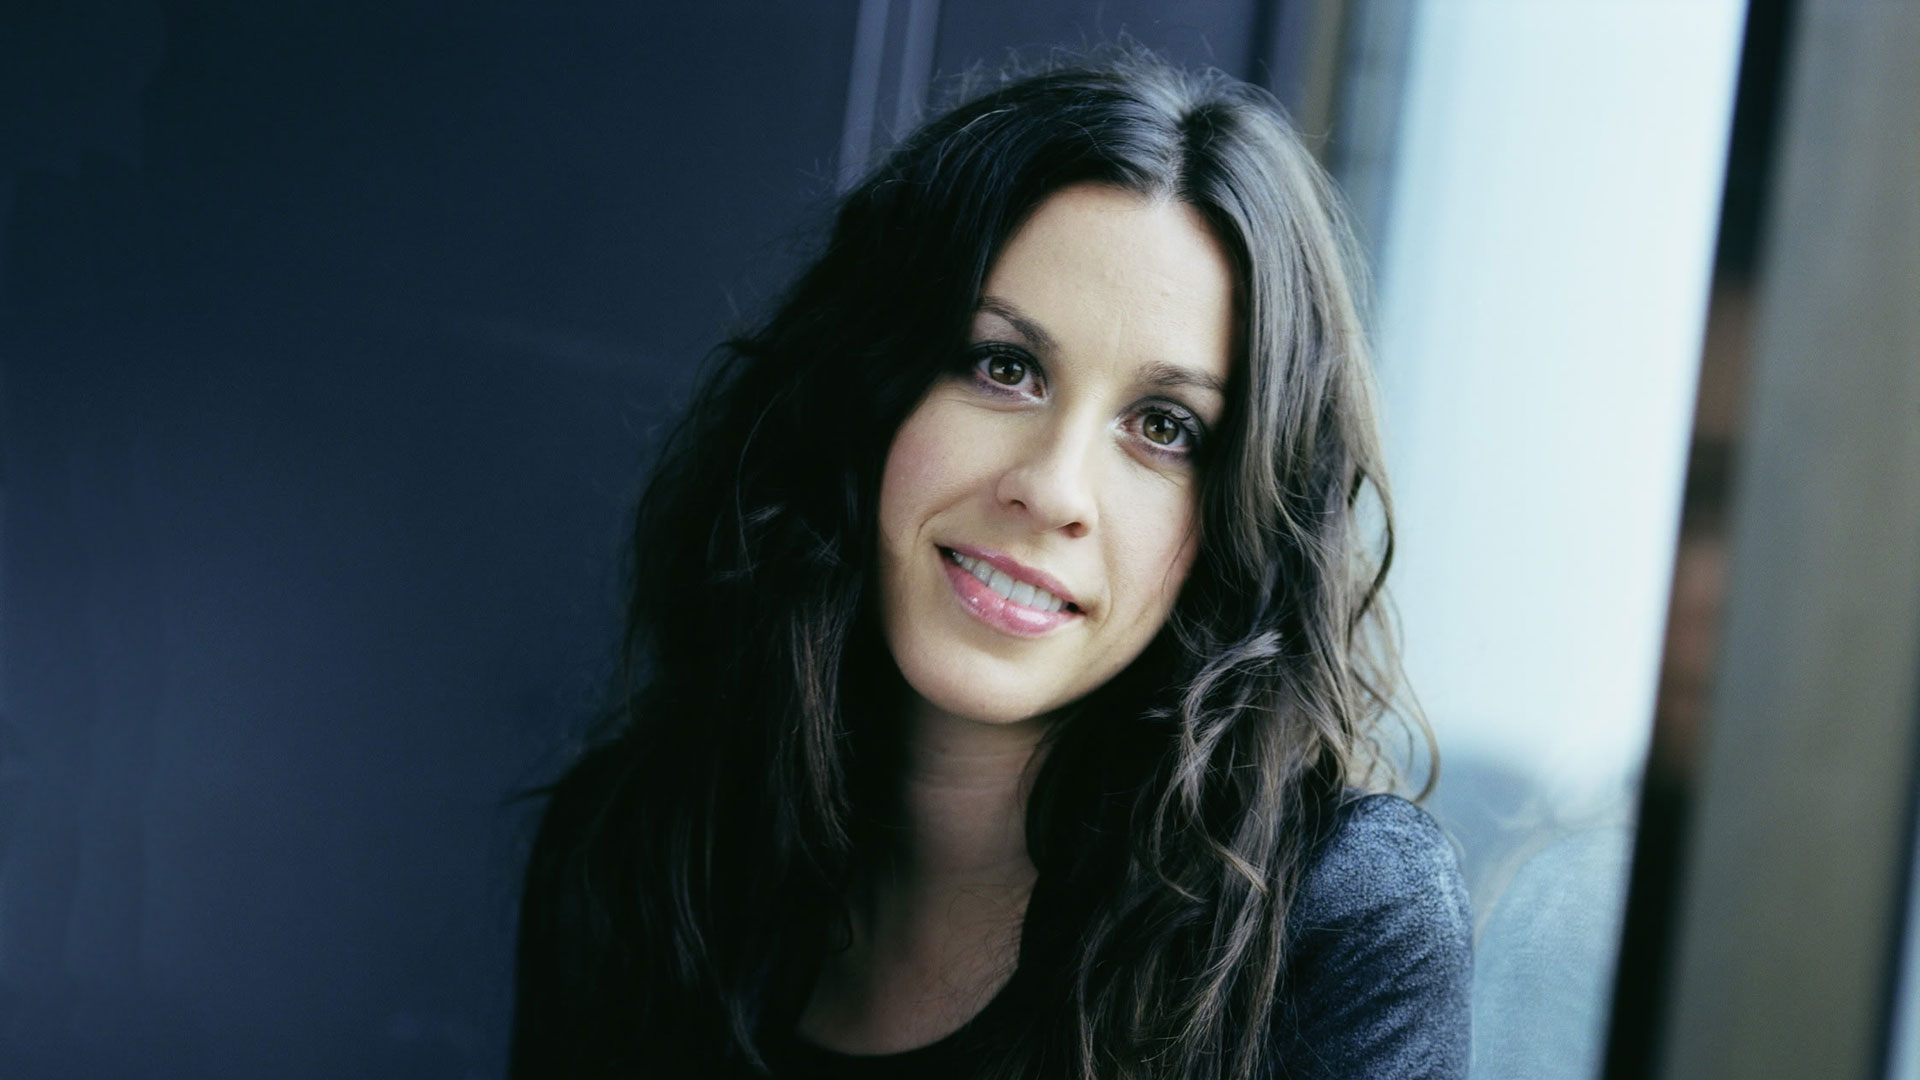 Alanis Morissette Wallpapers